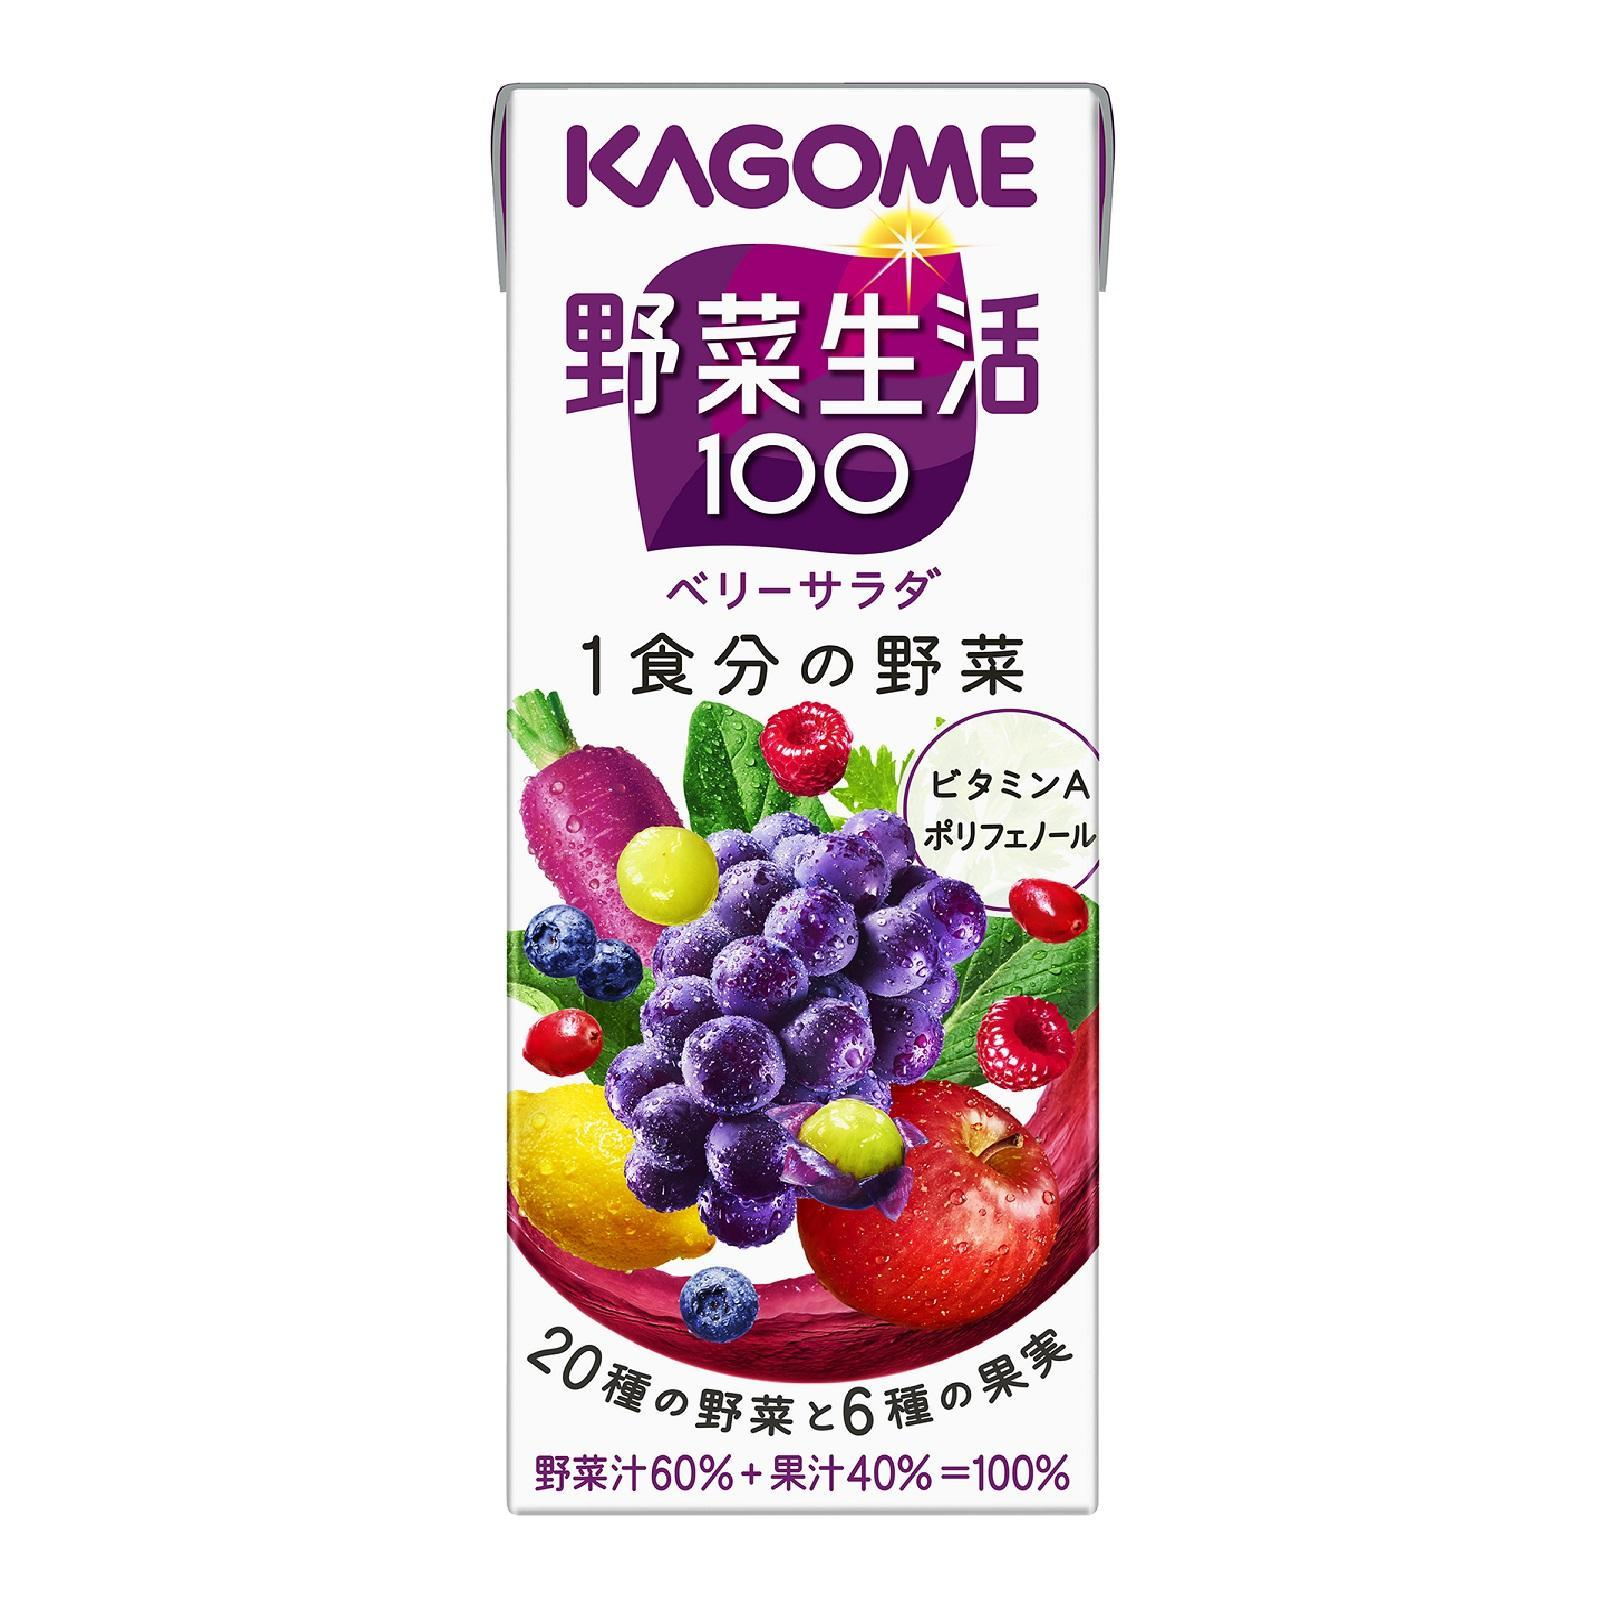 Kagome Berry Salad By Redmart.